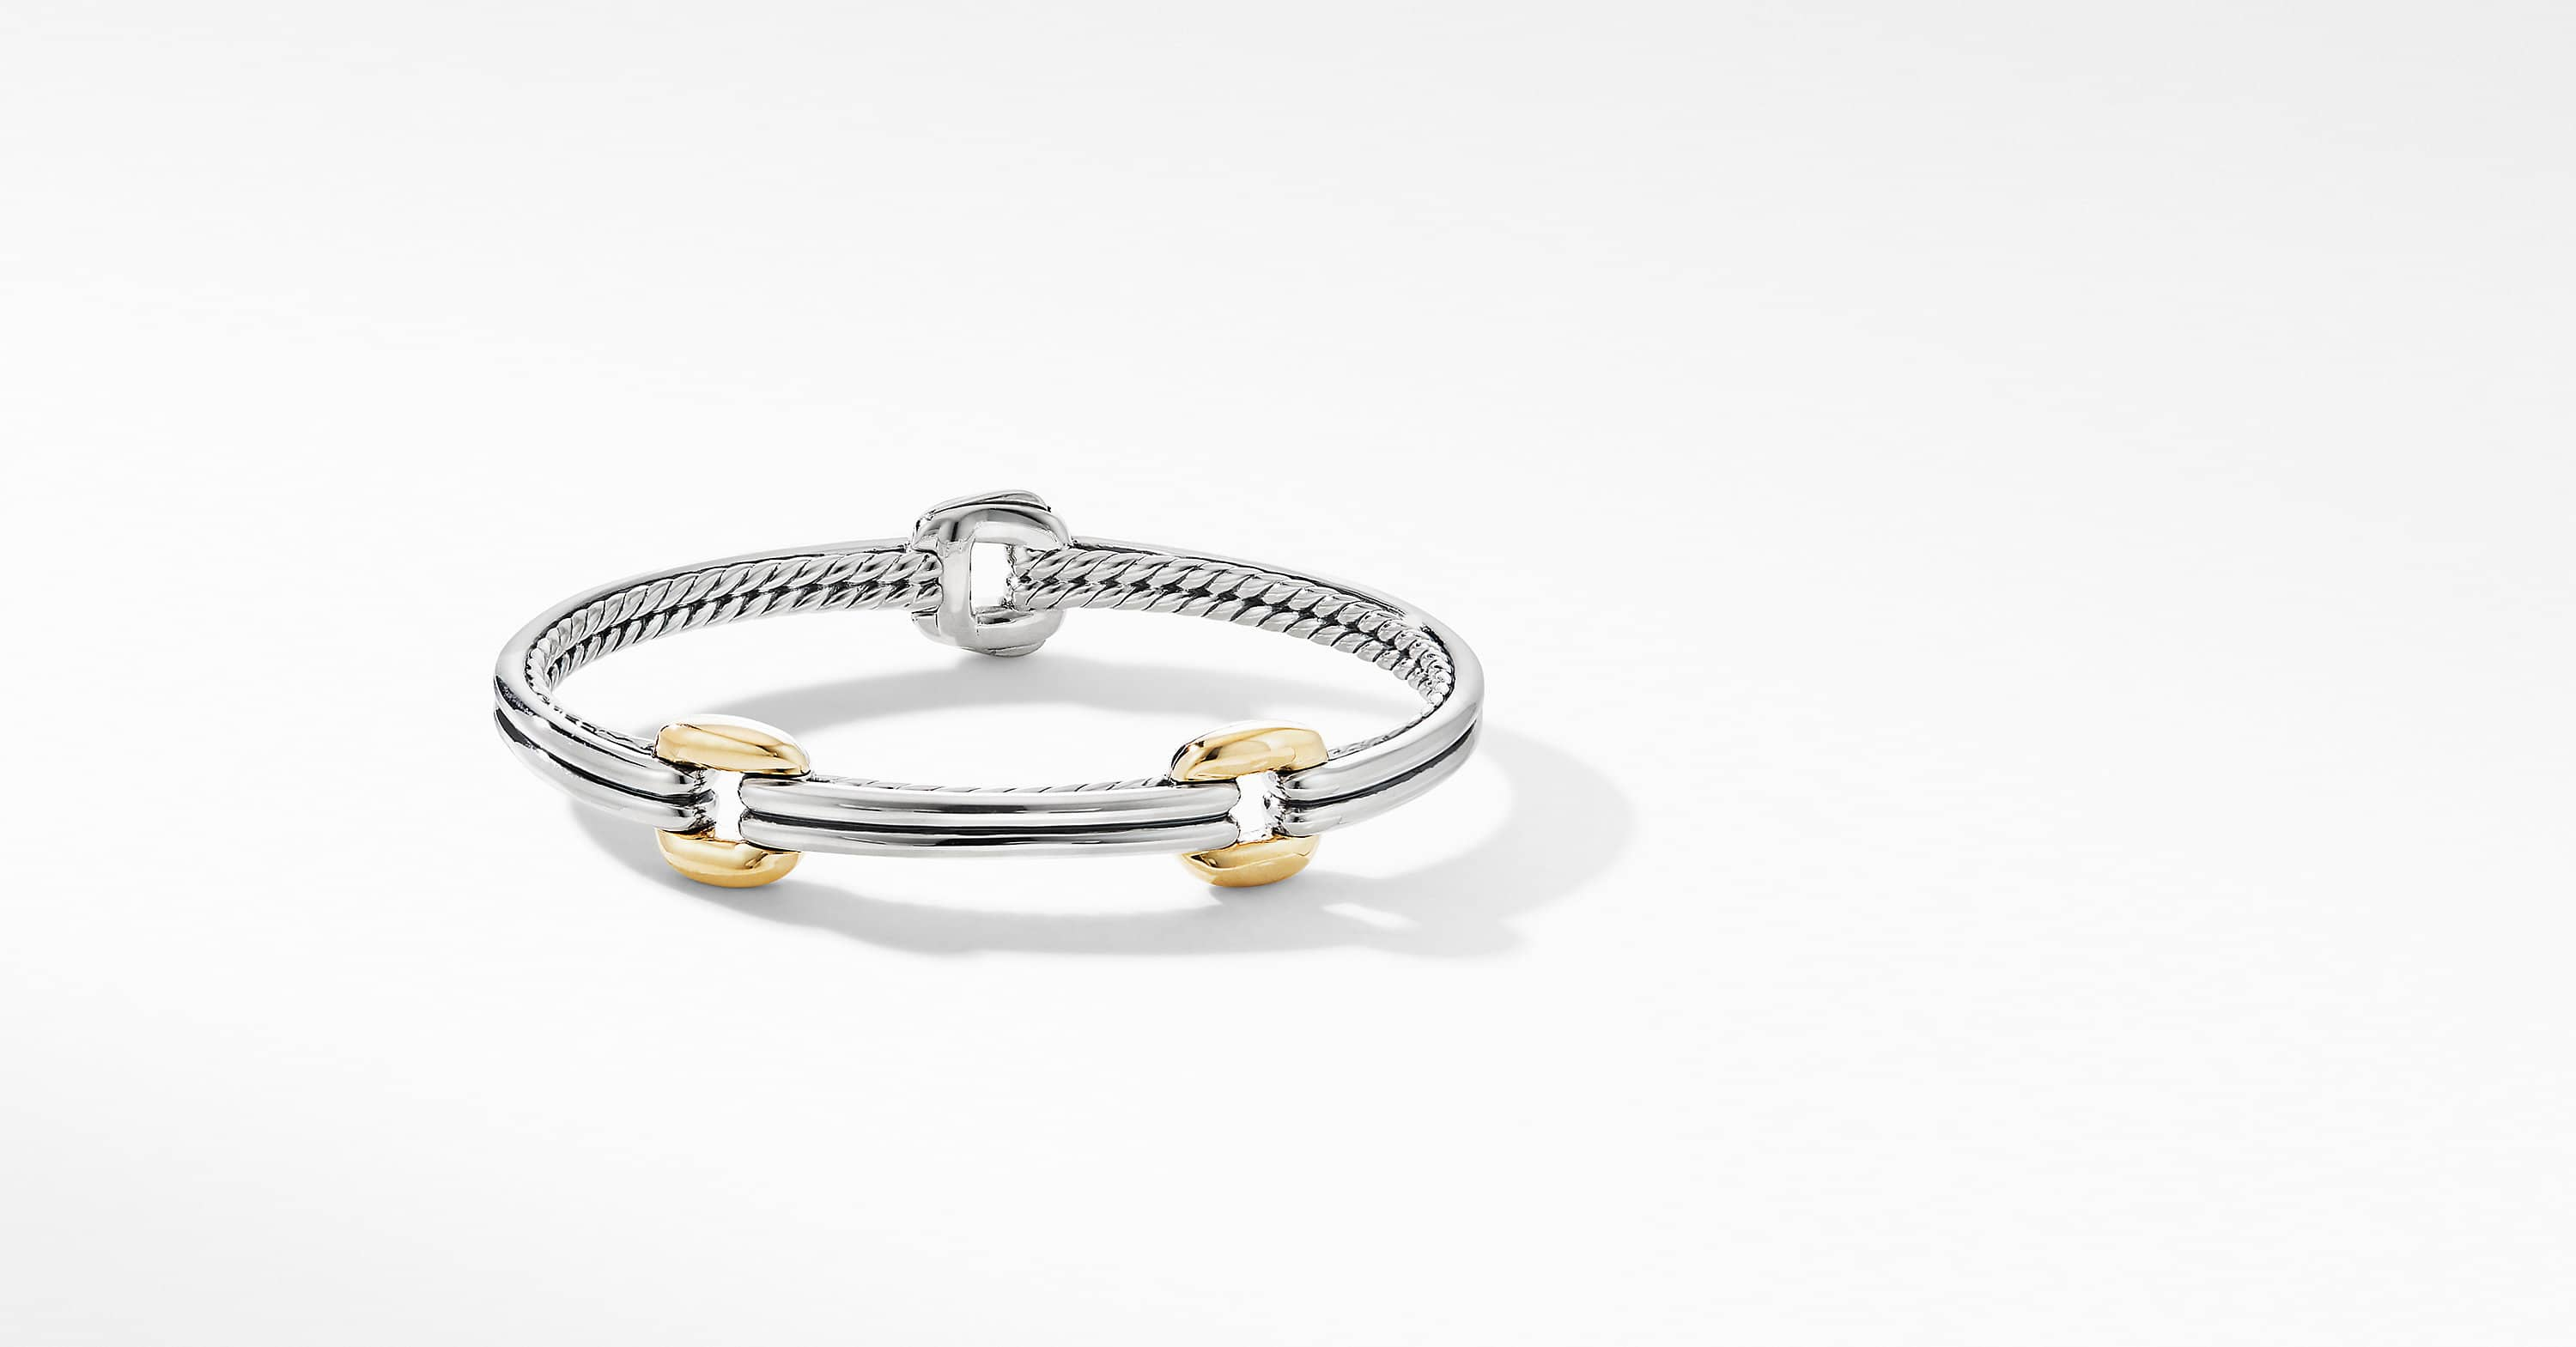 Thoroughbred Double Link Bracelet with 18K Yellow Gold